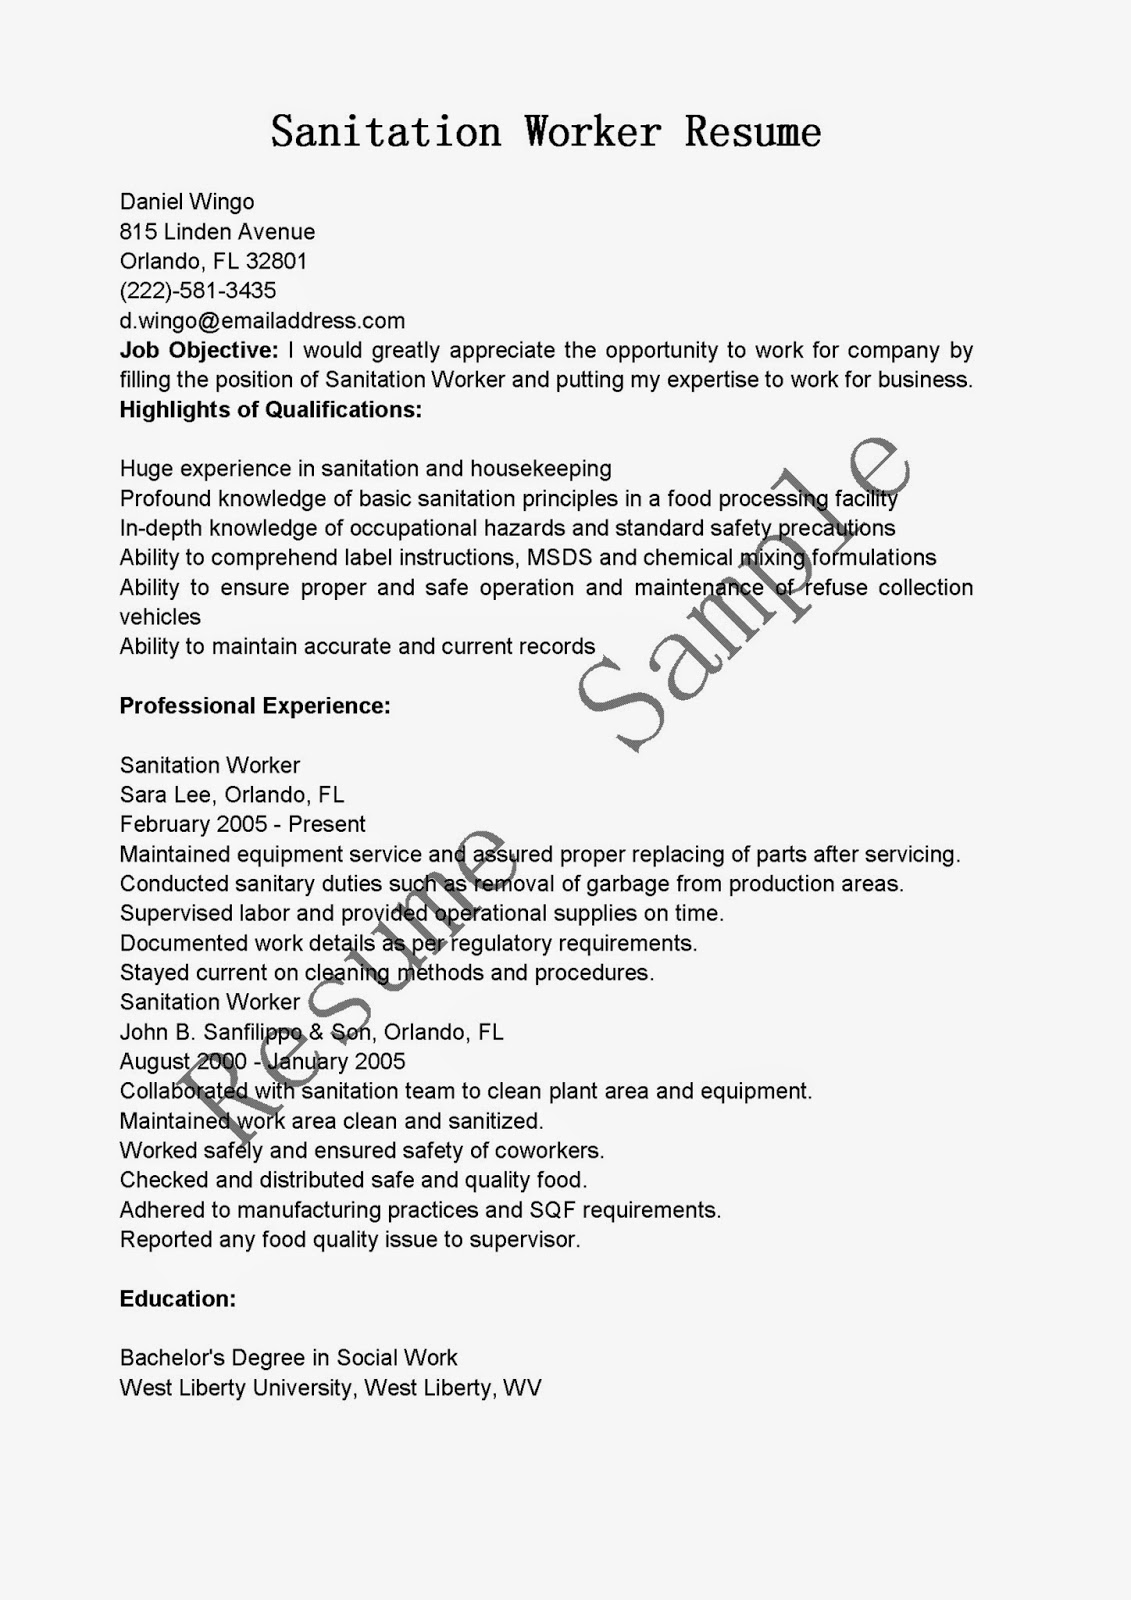 resume for cleaning job resume samples resume for cleaning job housekeeping cleaning resume sample resume genius resume samples sanitation worker resume sample